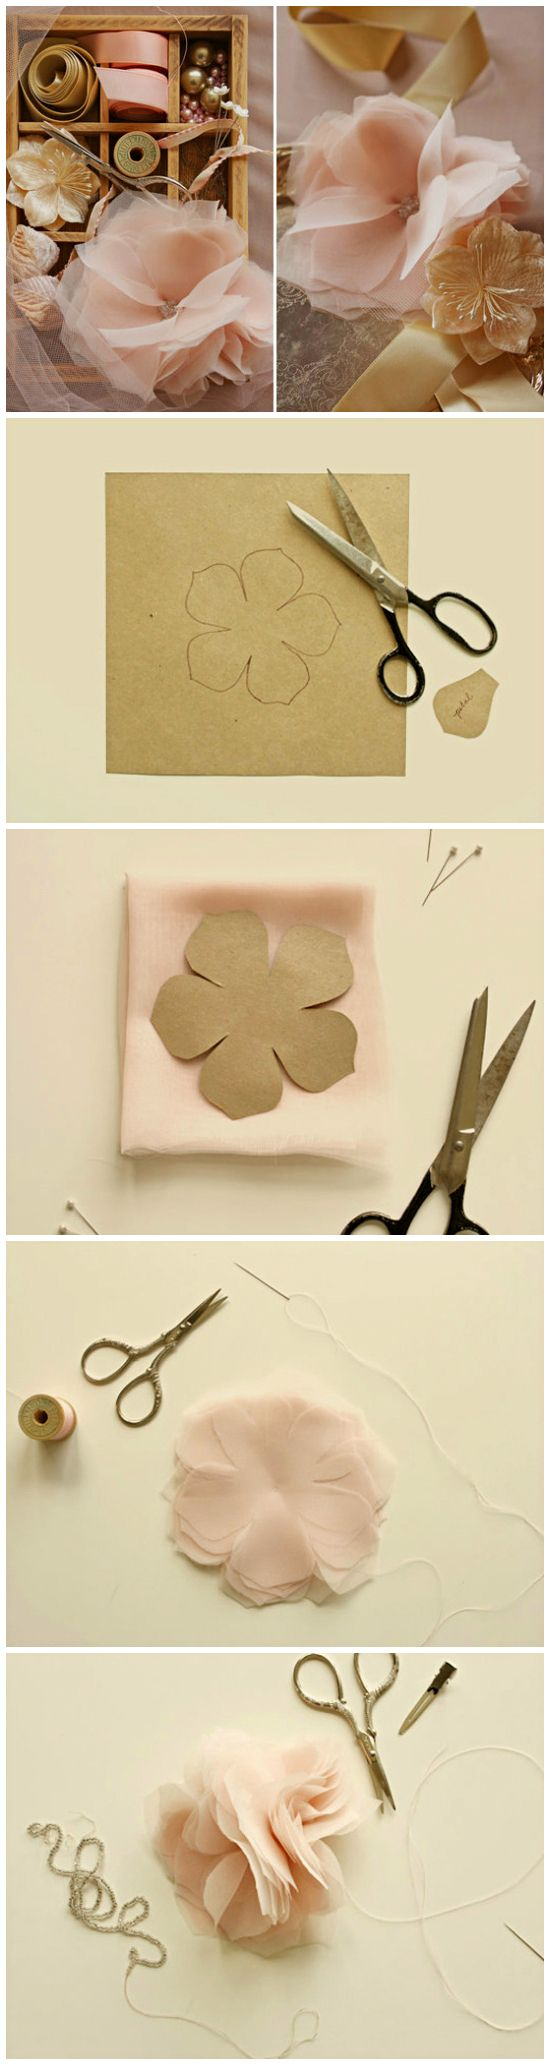 DIY ● Tutorial ● Chiffon and Tulle flowers. Can't wait to try these. I would us a broach or button for middle of the flower.